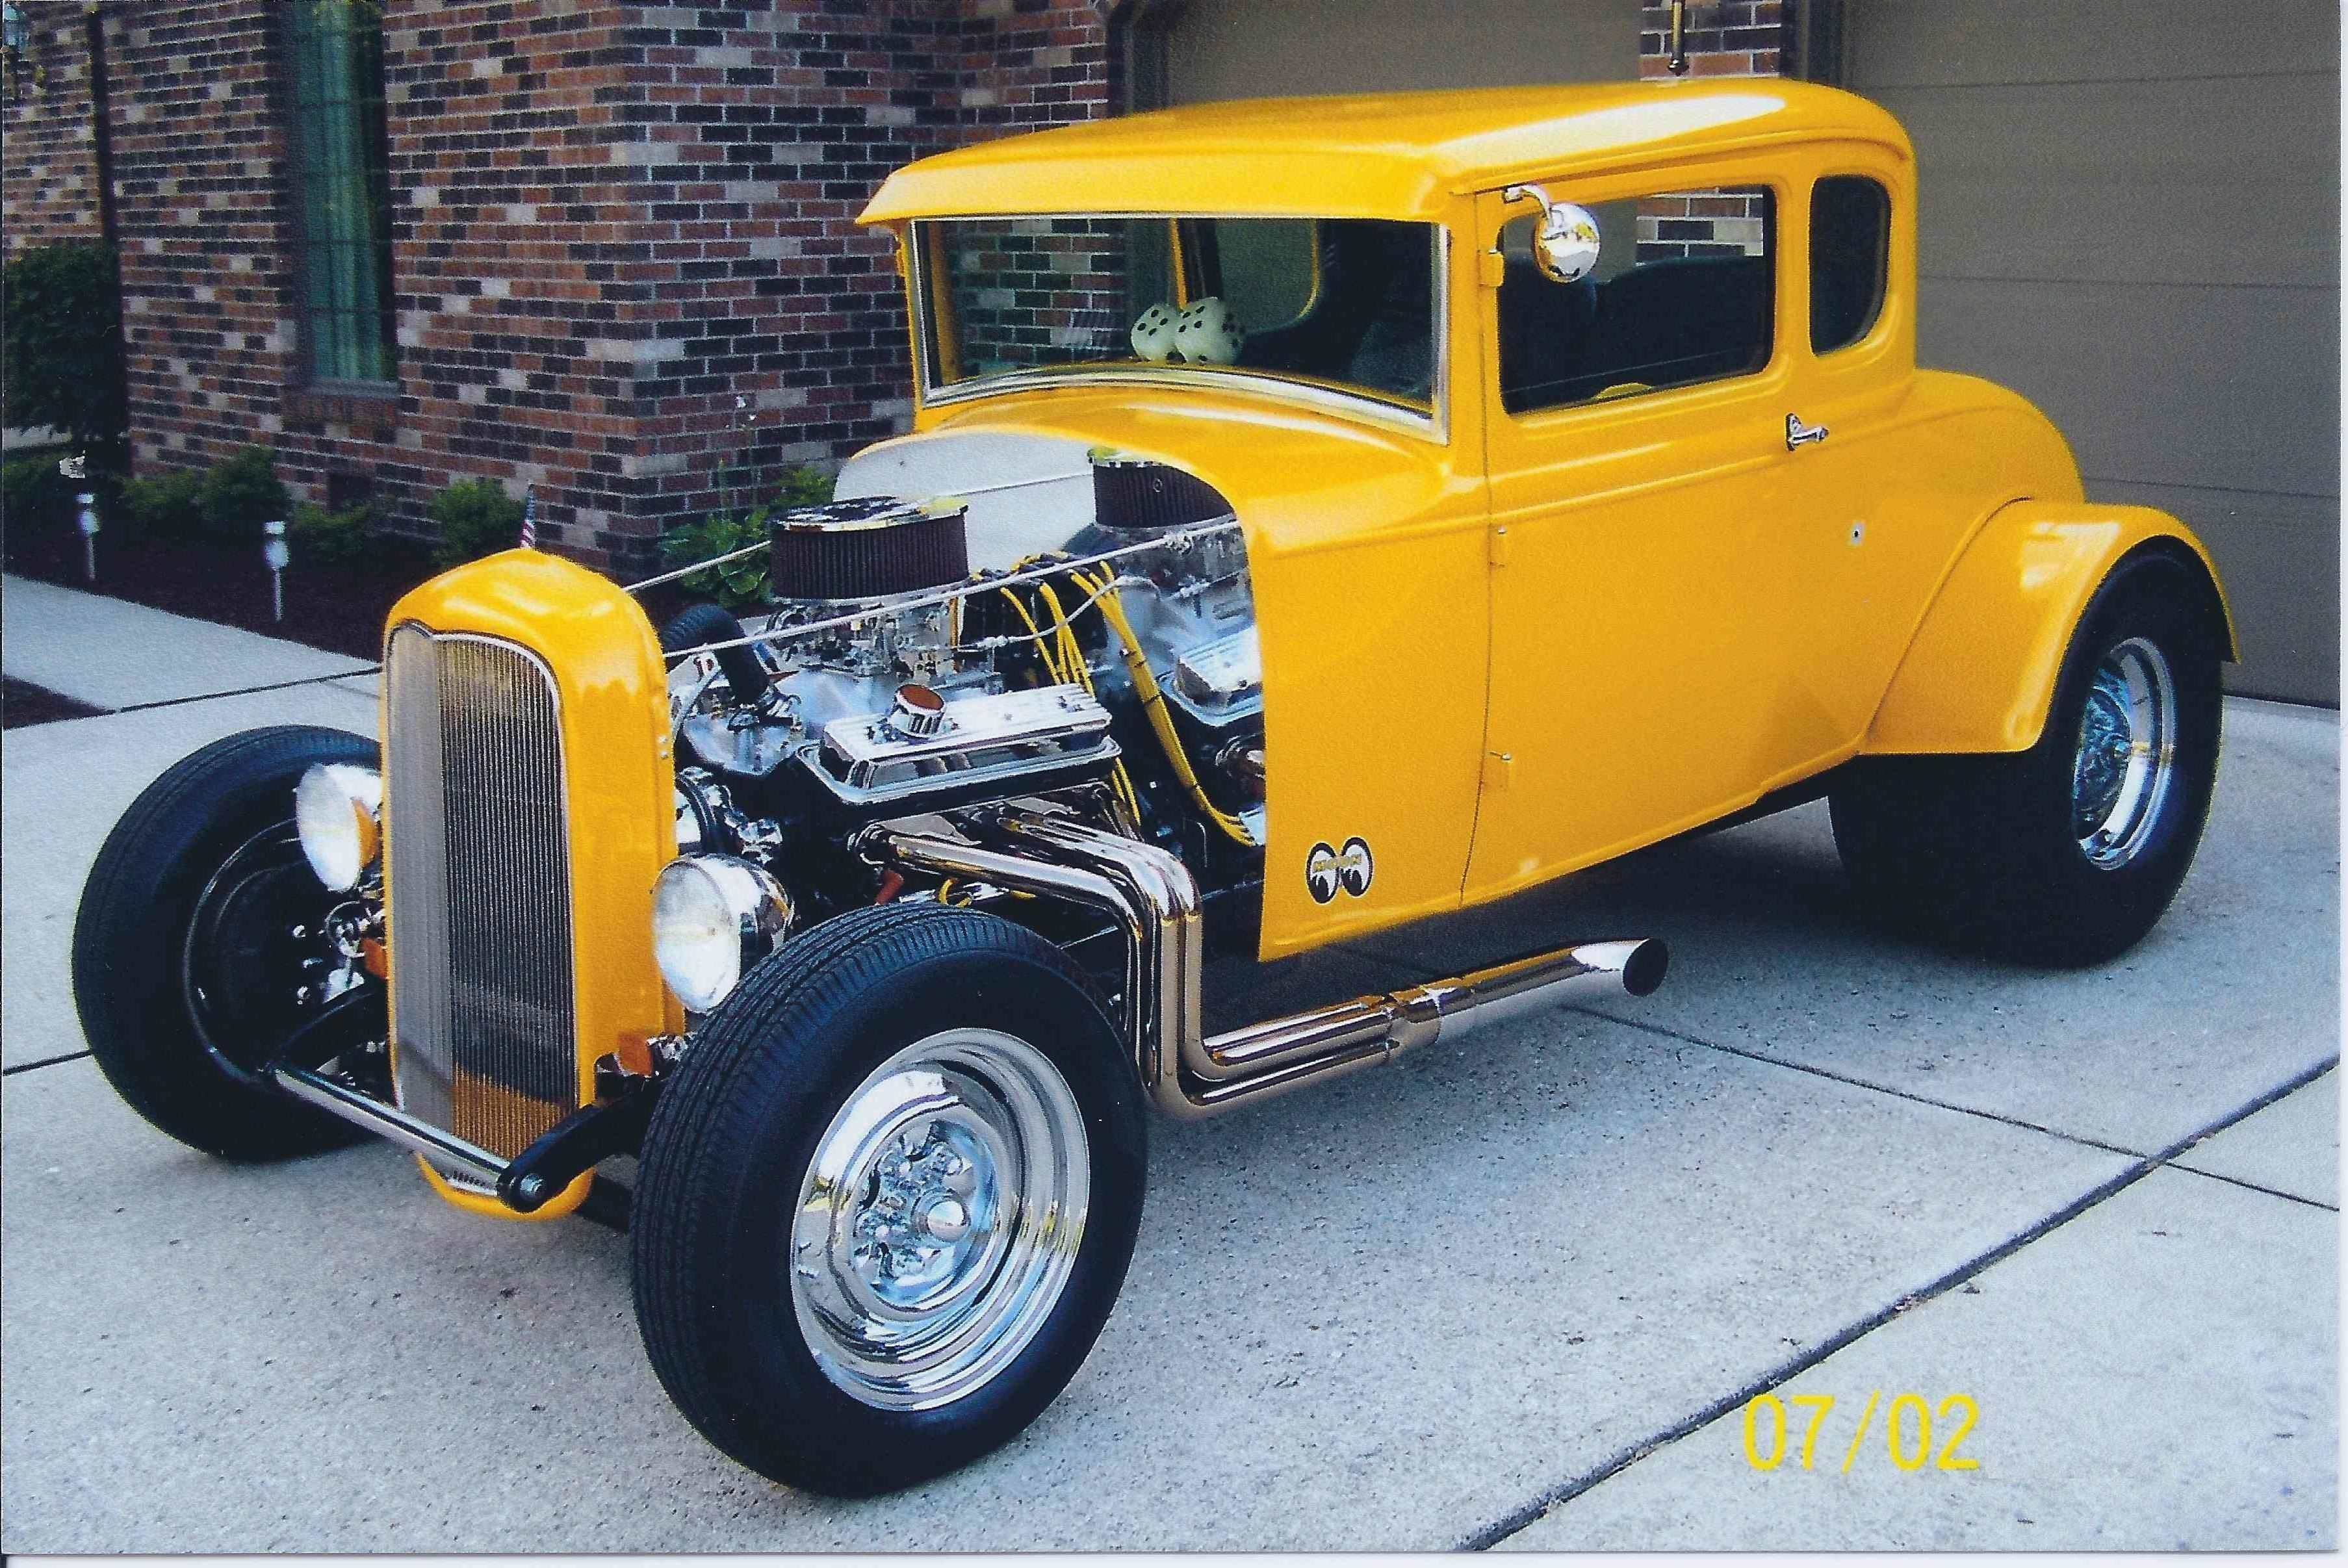 BluePrint Engines customer Jim Gard has installed our BP3833CT1 into his 1930 Ford Model A that he has restored. Looks amazing! #blueprintengines #crateengine #baseengine #bp3833ct1 #castironvortecheads #rollercam #420hp #caststeelcrank #modela #ford #joyride #calltoday #dynotested #warranty #engineenthusiasts #predictablepower #proenginebuilders